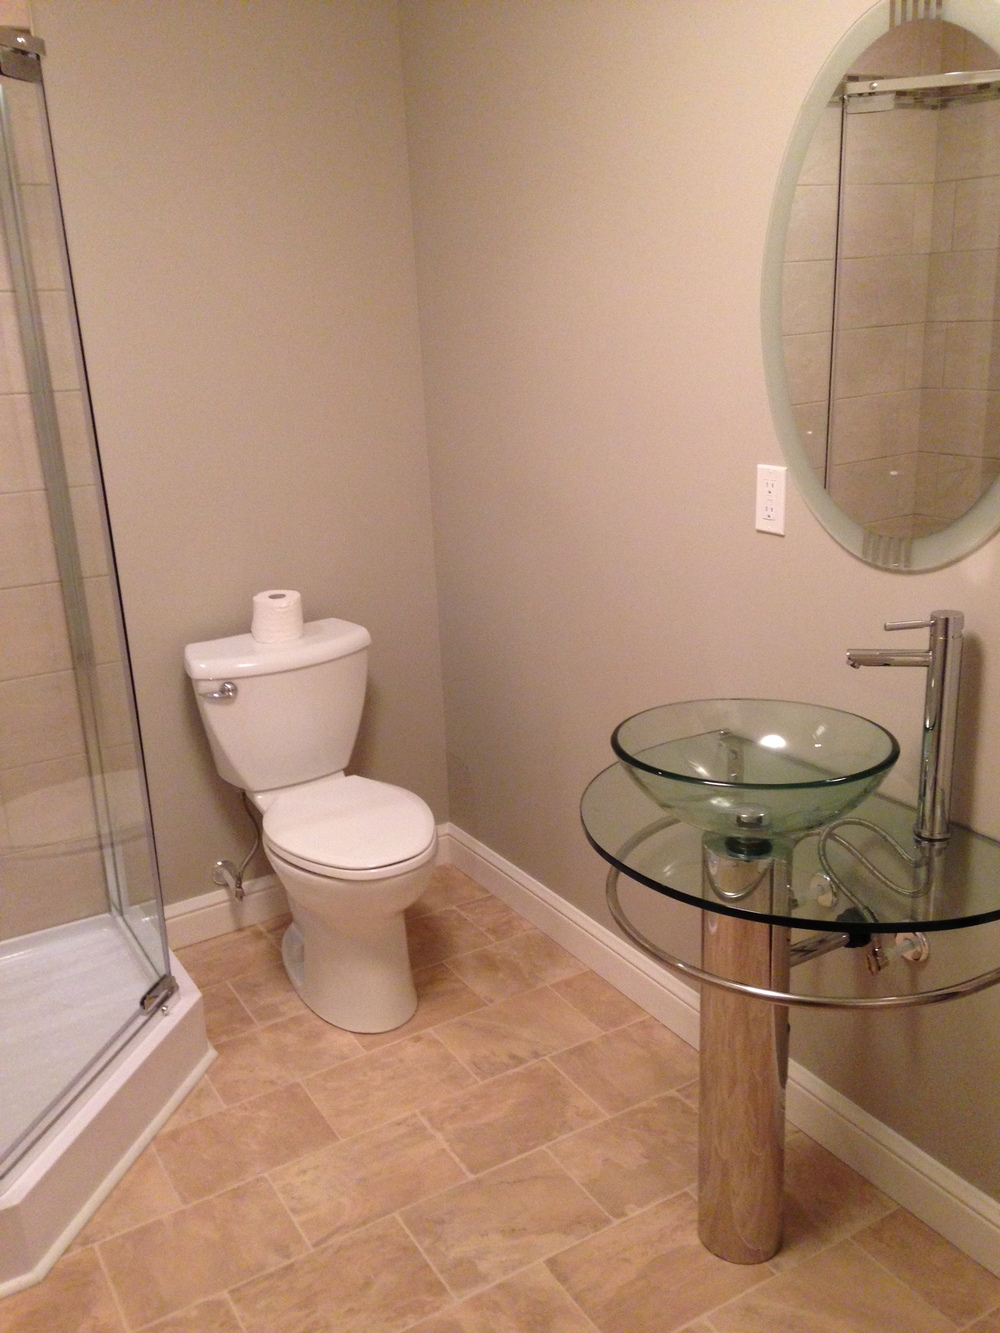 3/4 bath with pedestal sink and matching mirror